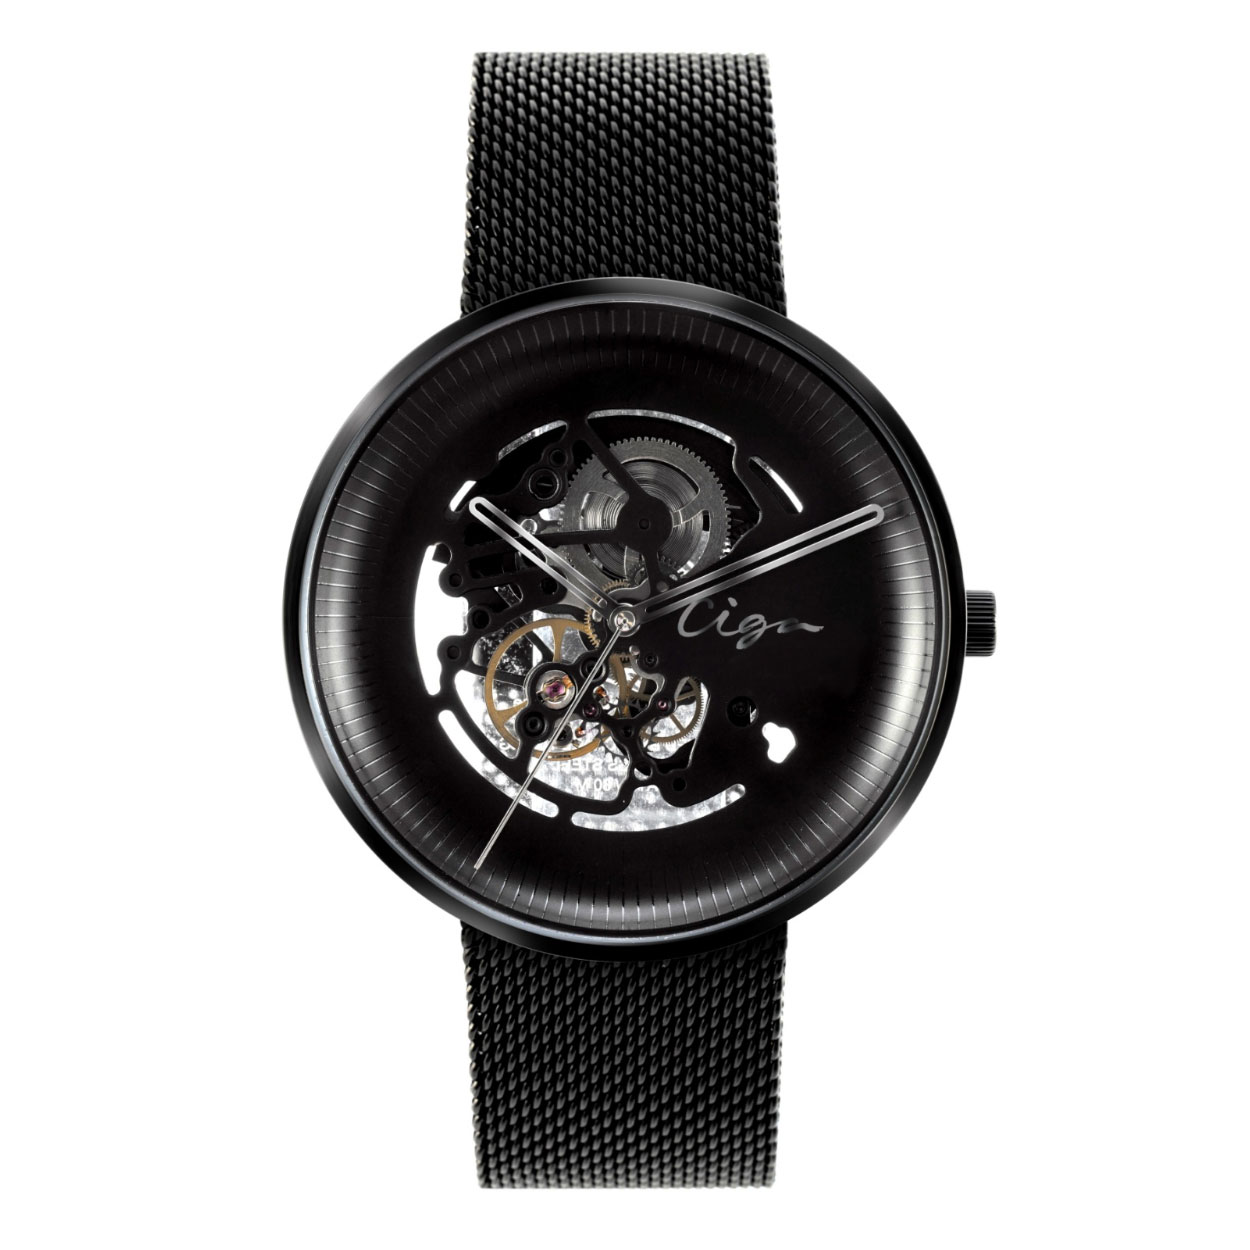 industrial p sevenfriday limited edition carousell luxury on watches series